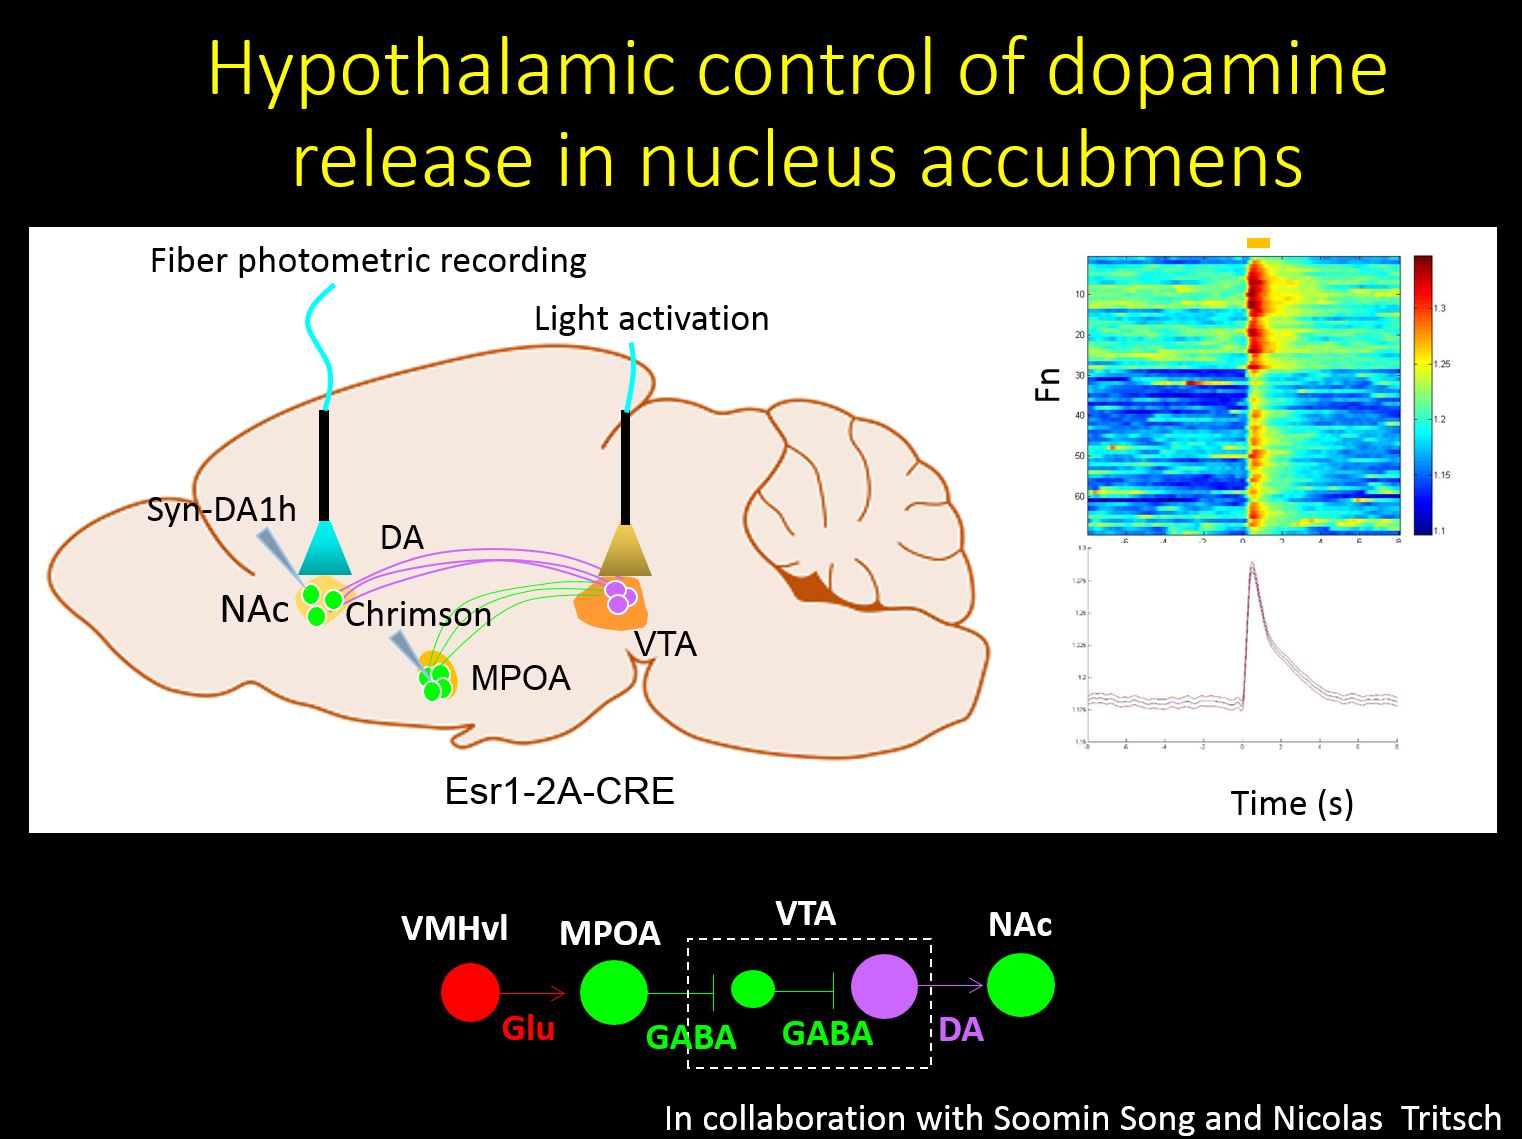 Hypothalamic control of dopamine release in nucleus accumbens